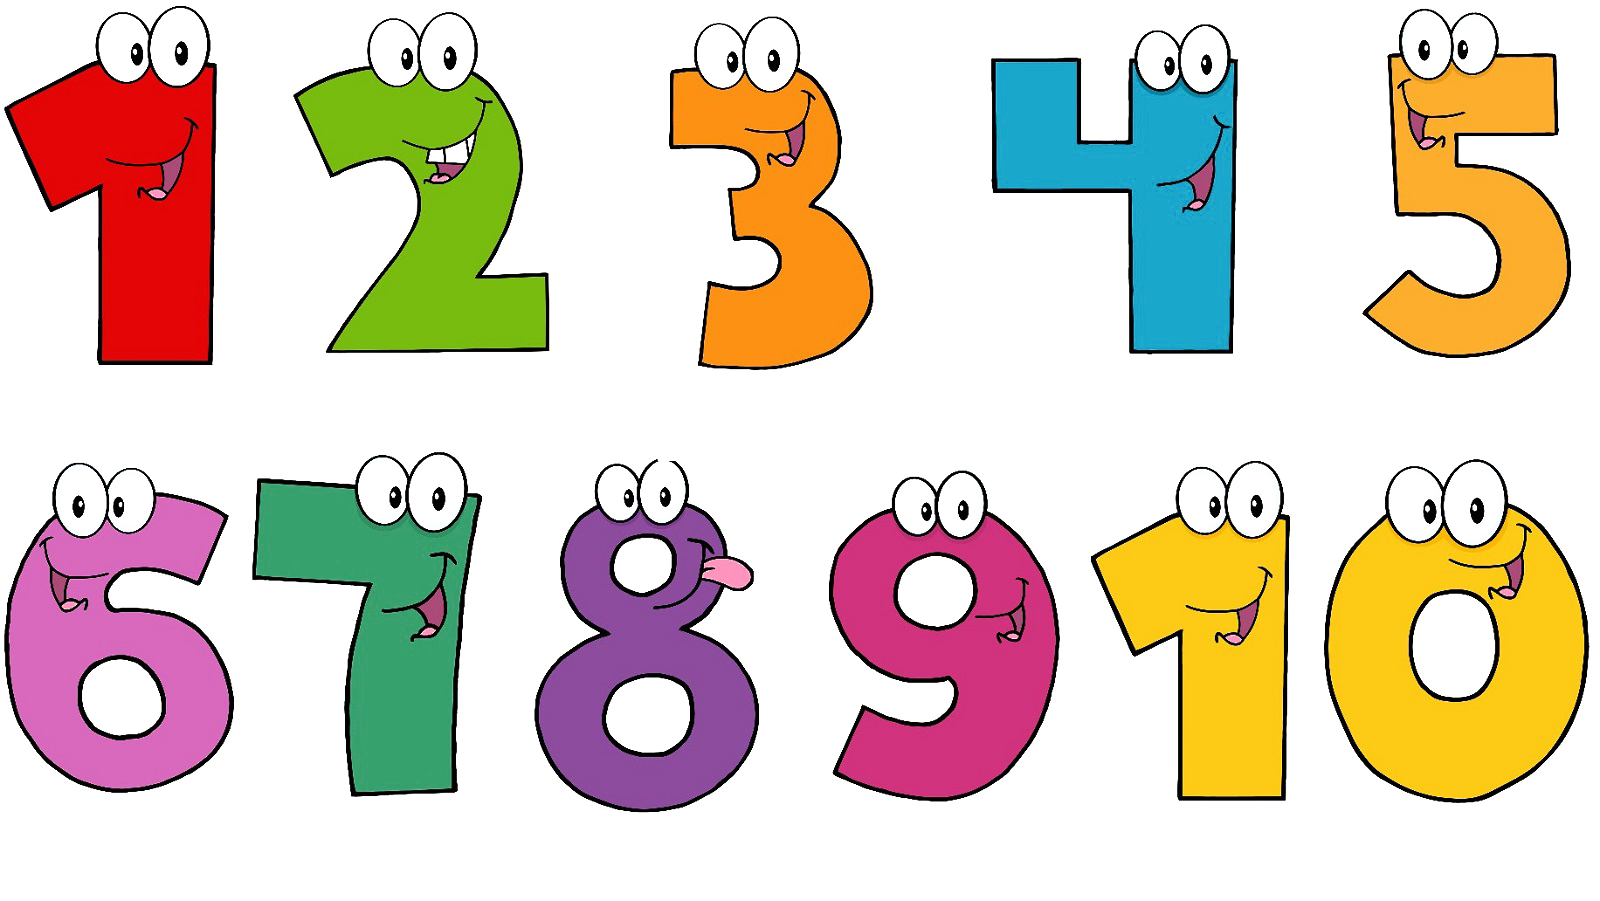 1 transparent clipart jpg free download 1 to 10 Numbers PNG Transparent Images | PNG All jpg free download